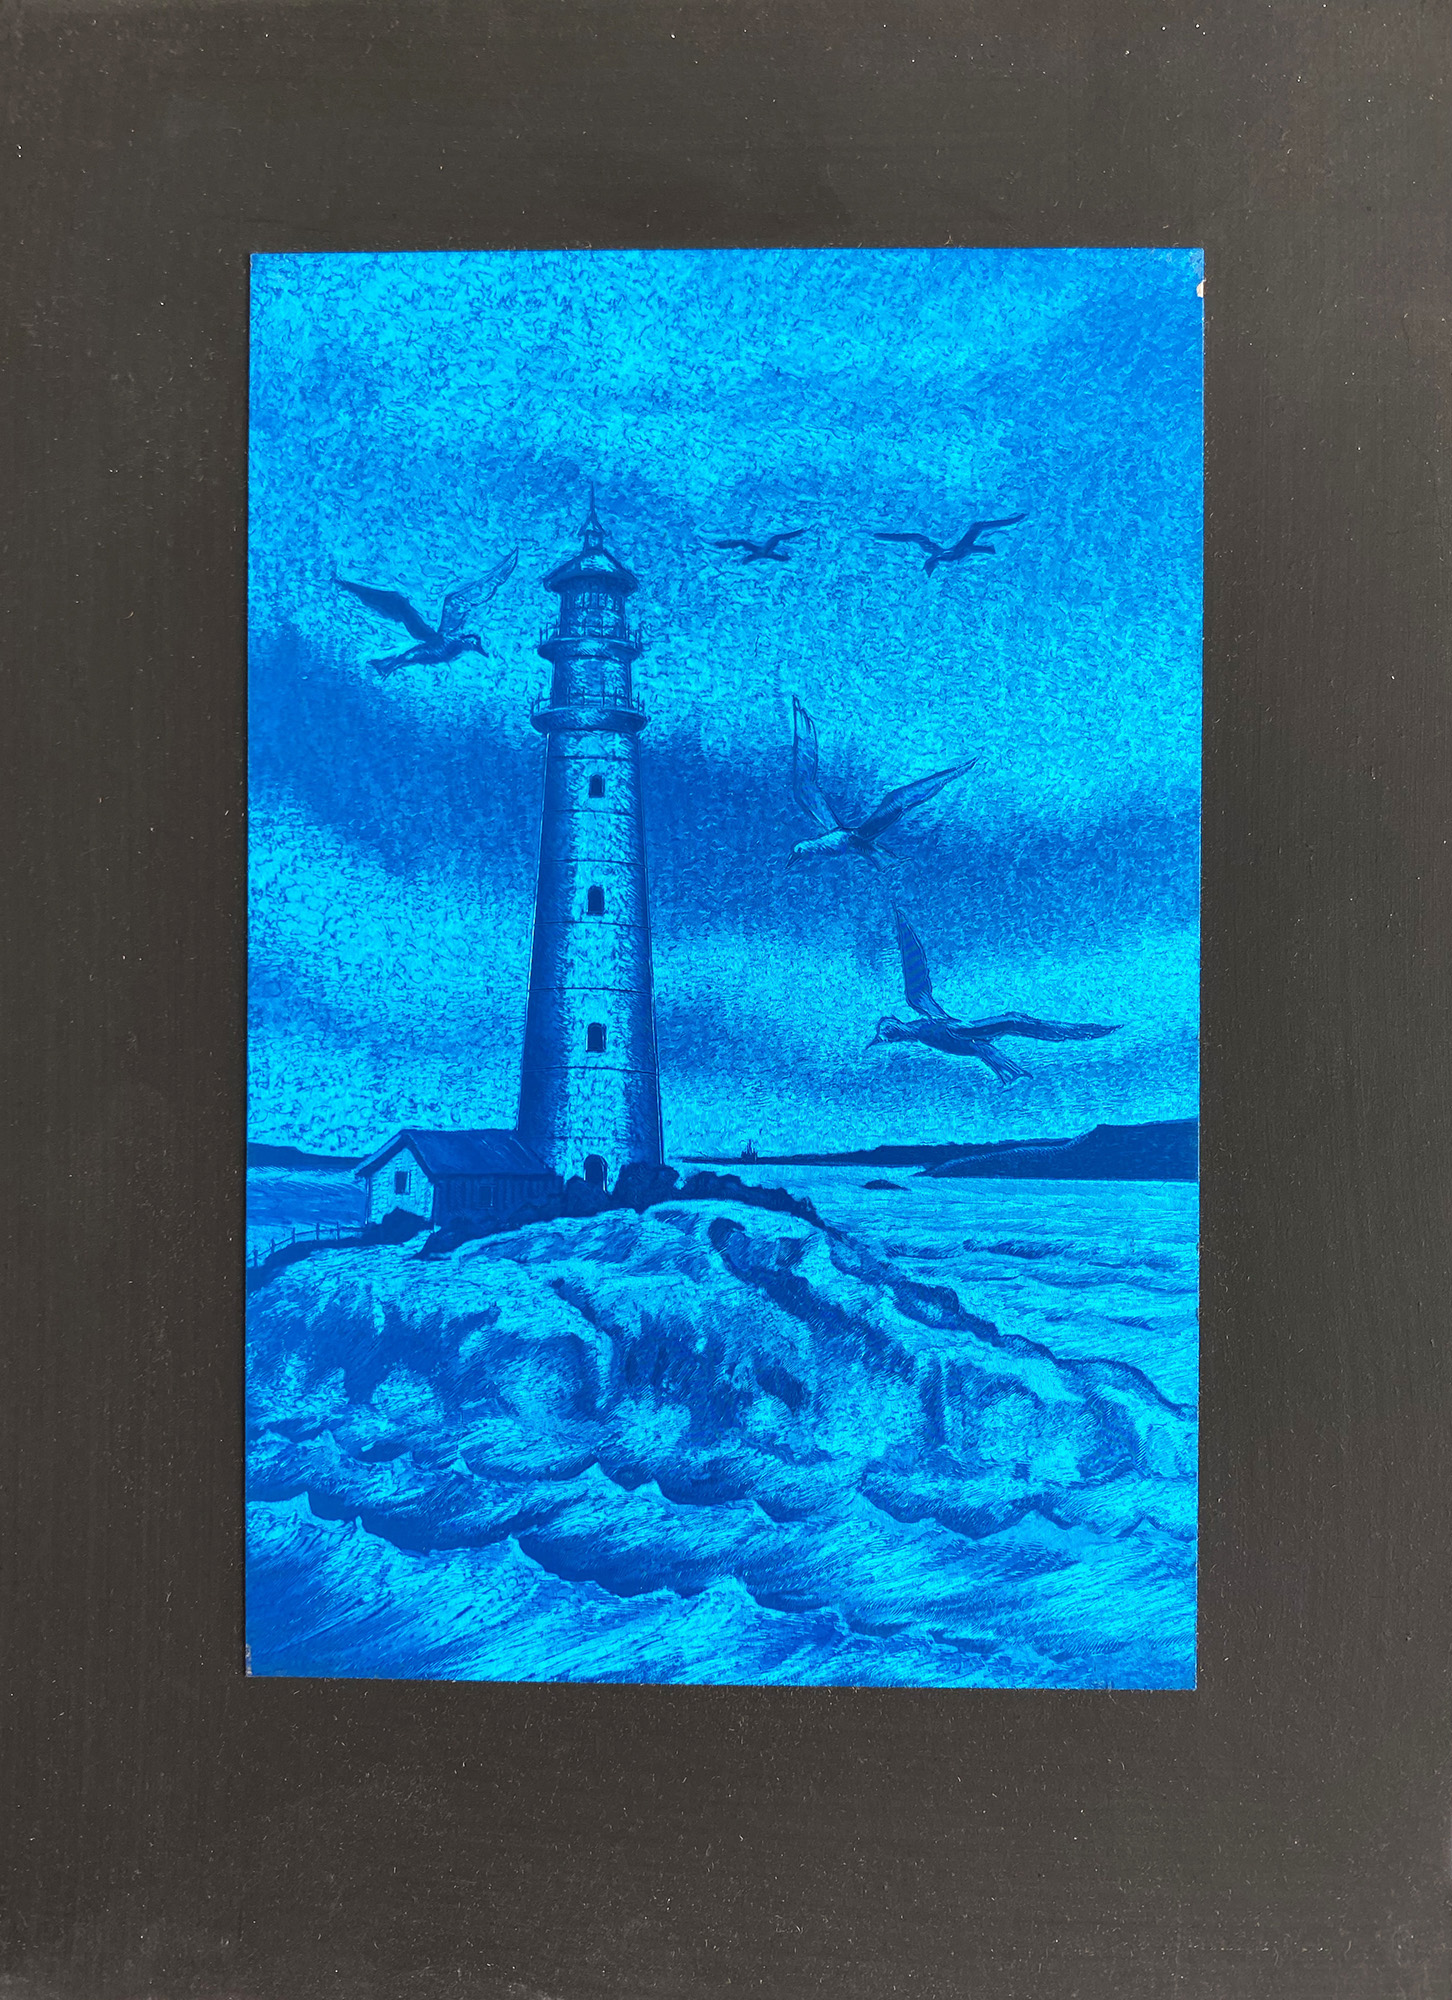 lighthouse-blue-gravure-etching-on-aluminium